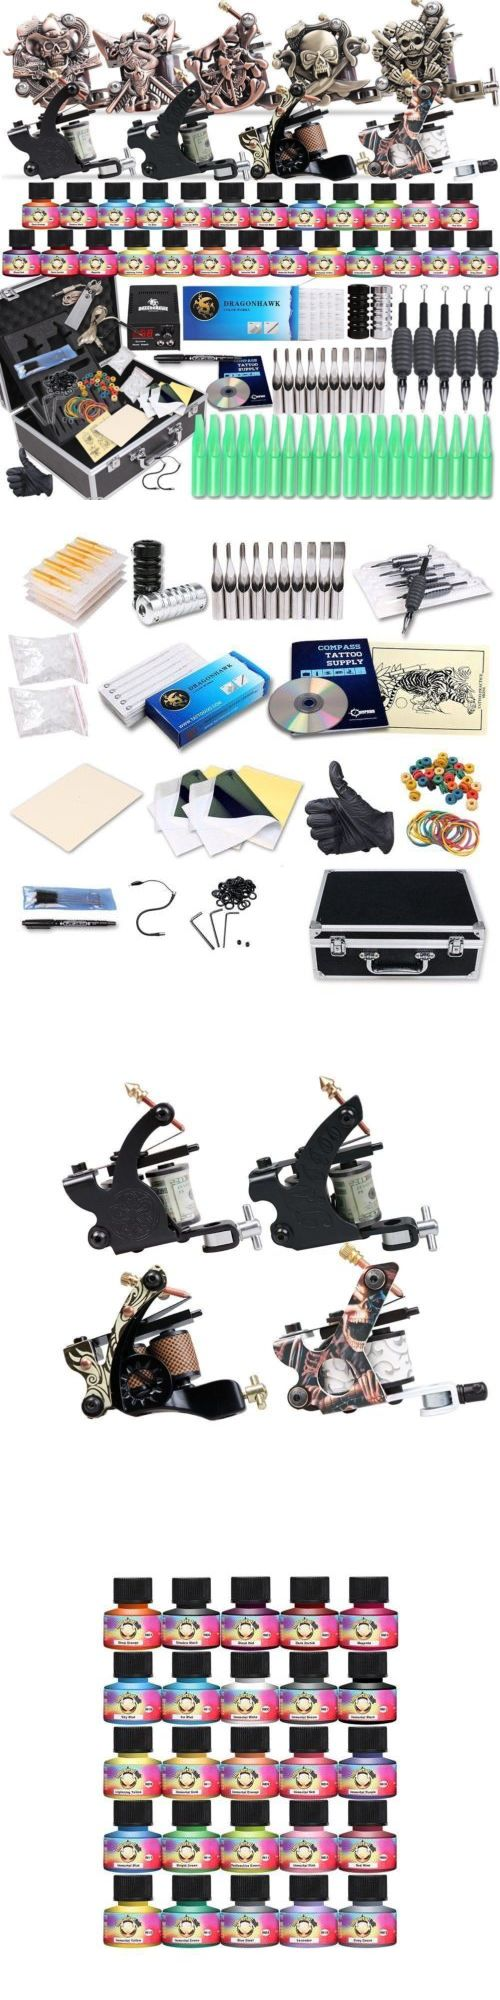 Tattoo Complete Kits: Starter Complete Tattoo Kit Professional Machine Gun Power Supply Needle Ink Set -> BUY IT NOW ONLY: $114.99 on eBay!